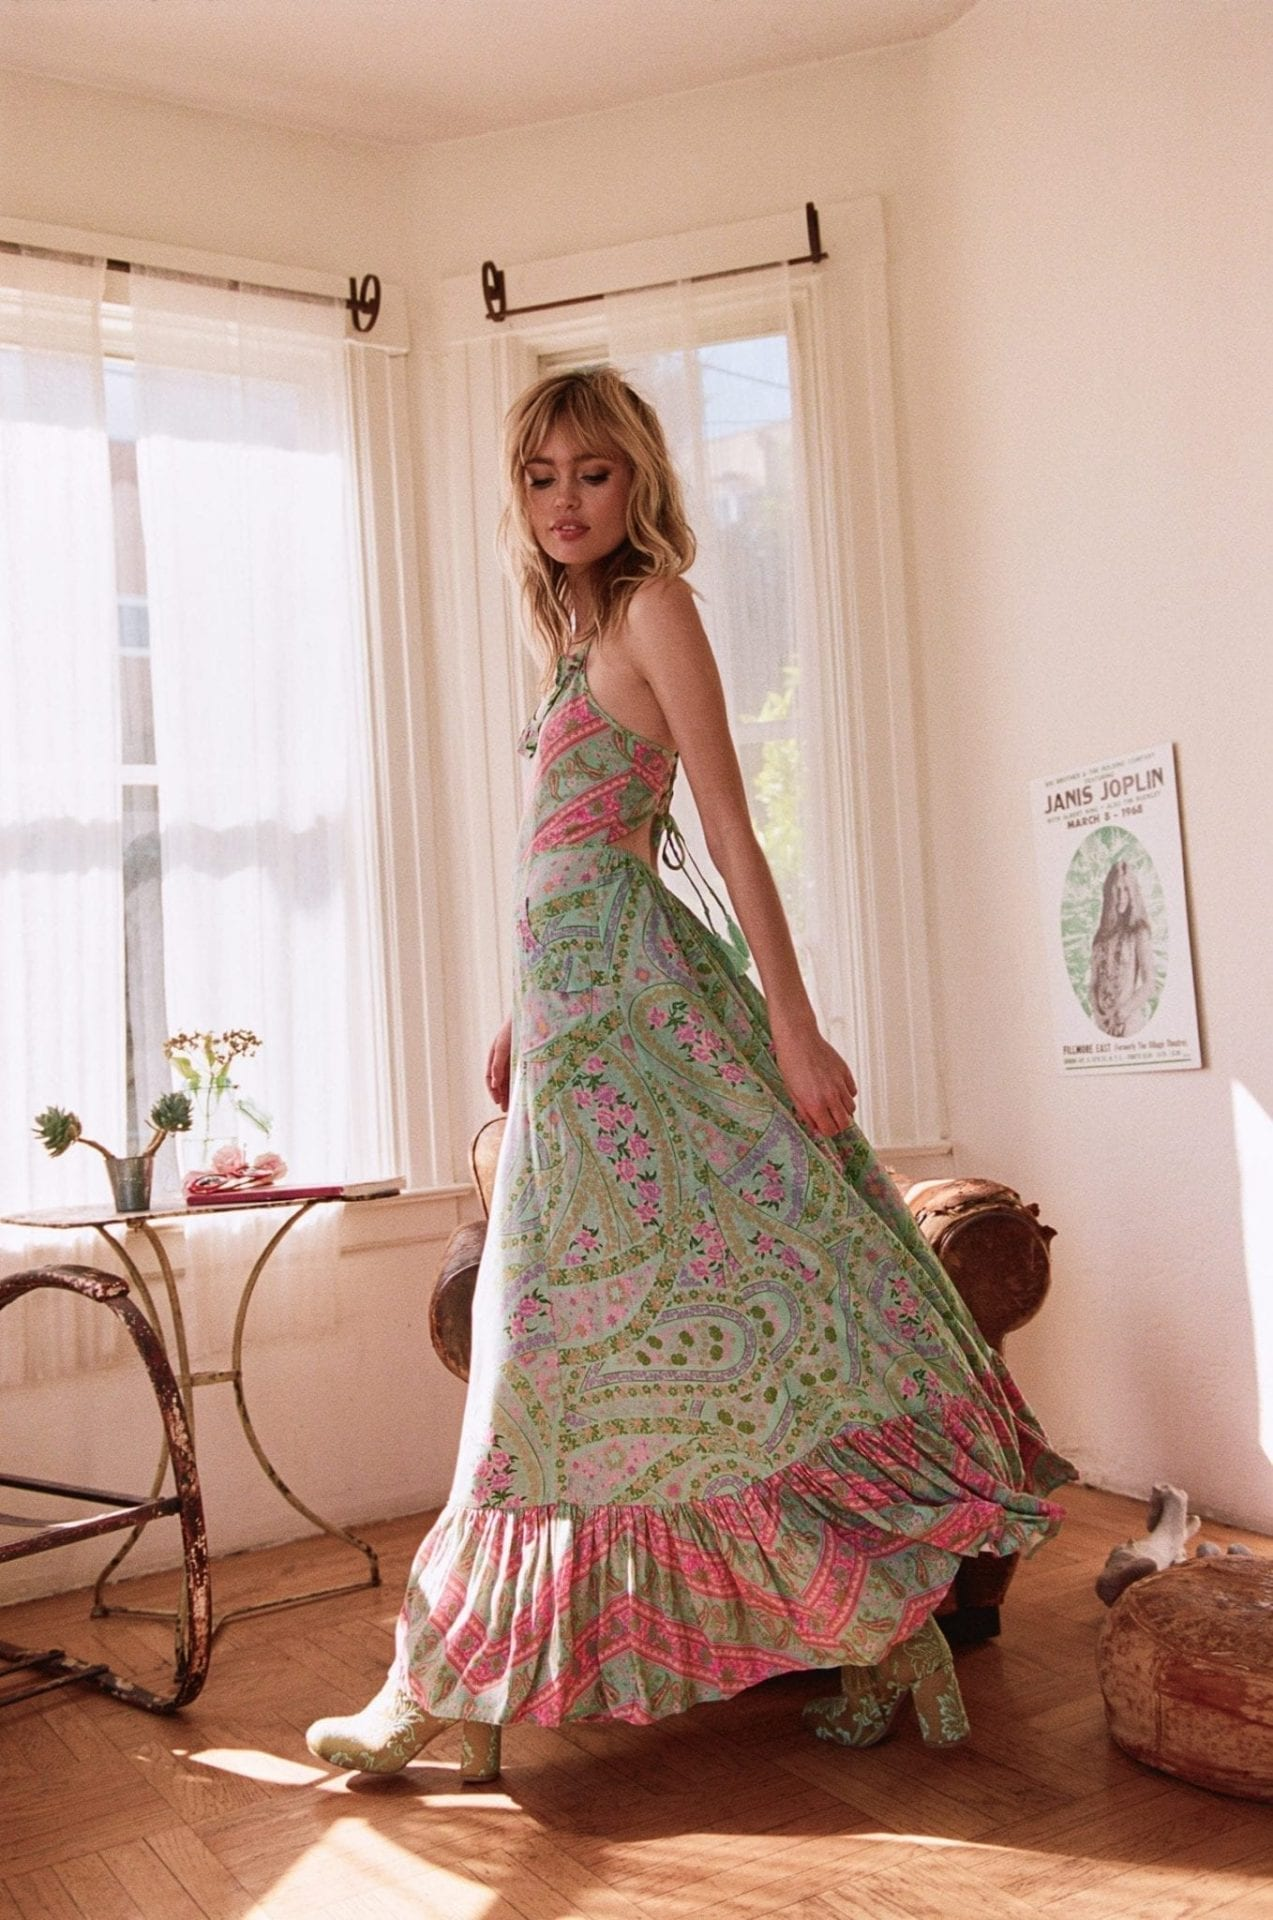 Maxi Dresses ... We Select The Best For Maximum Impact